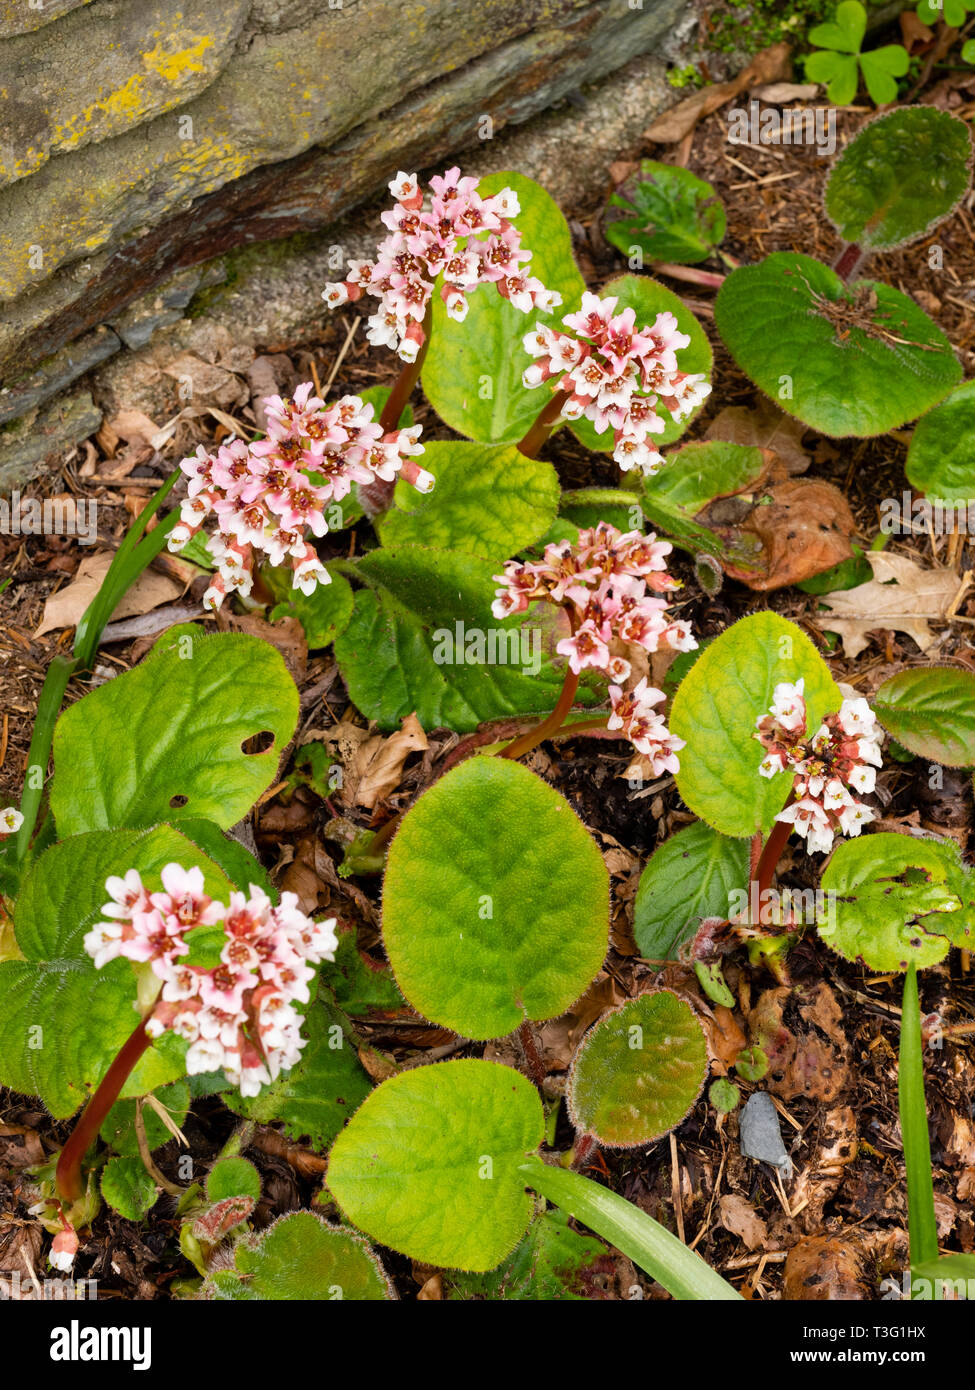 Pink and white flowers emerge above hairy, deciduous foliage of the spring blooming perennial, Bergenia ciliata - Stock Image